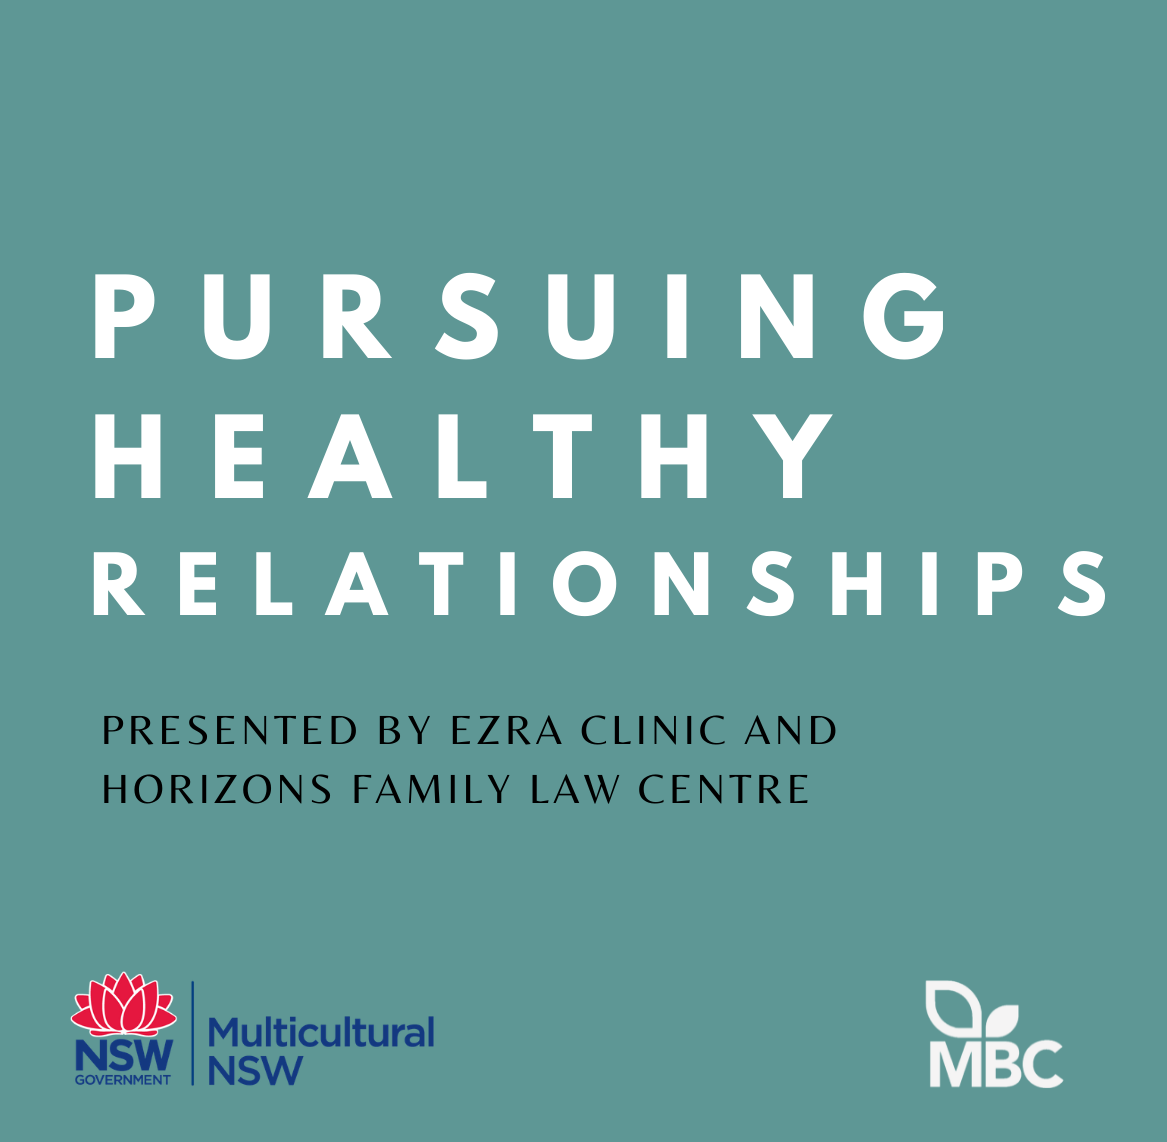 Pursuing Healthy Relationships